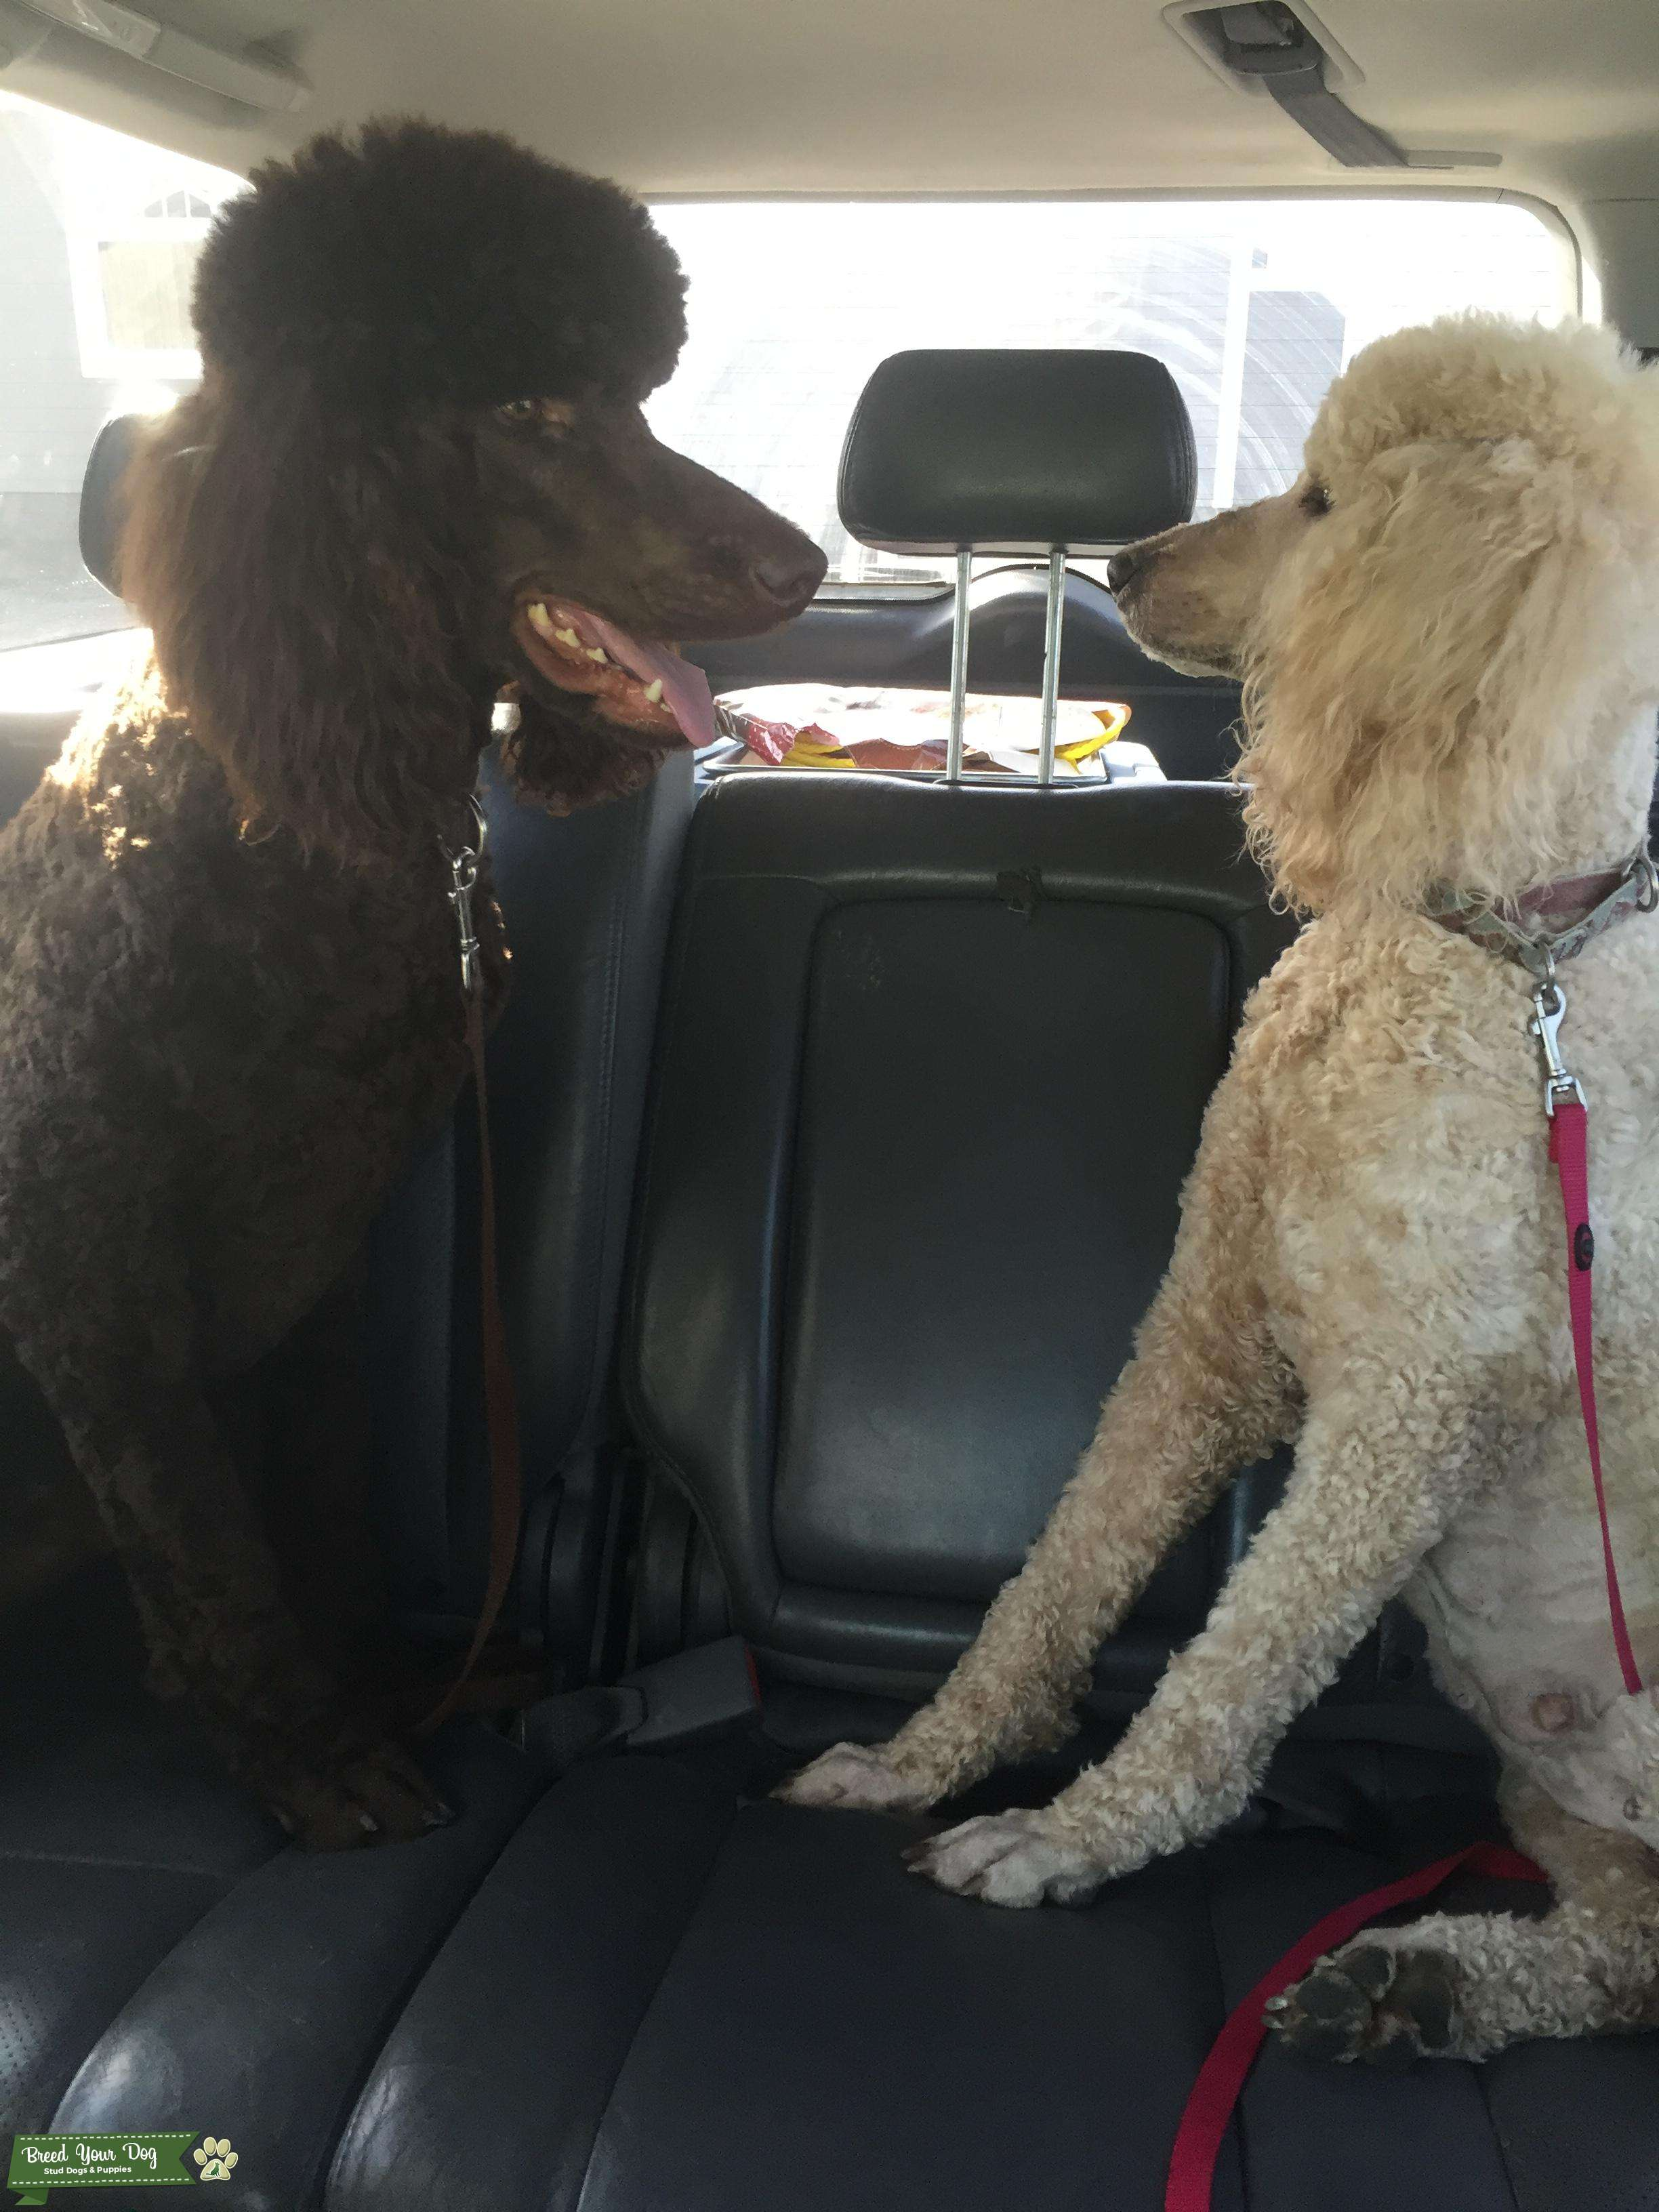 Strange Stud Dog Akc Brown Standard Poodle Breed Your Dog Alphanode Cool Chair Designs And Ideas Alphanodeonline